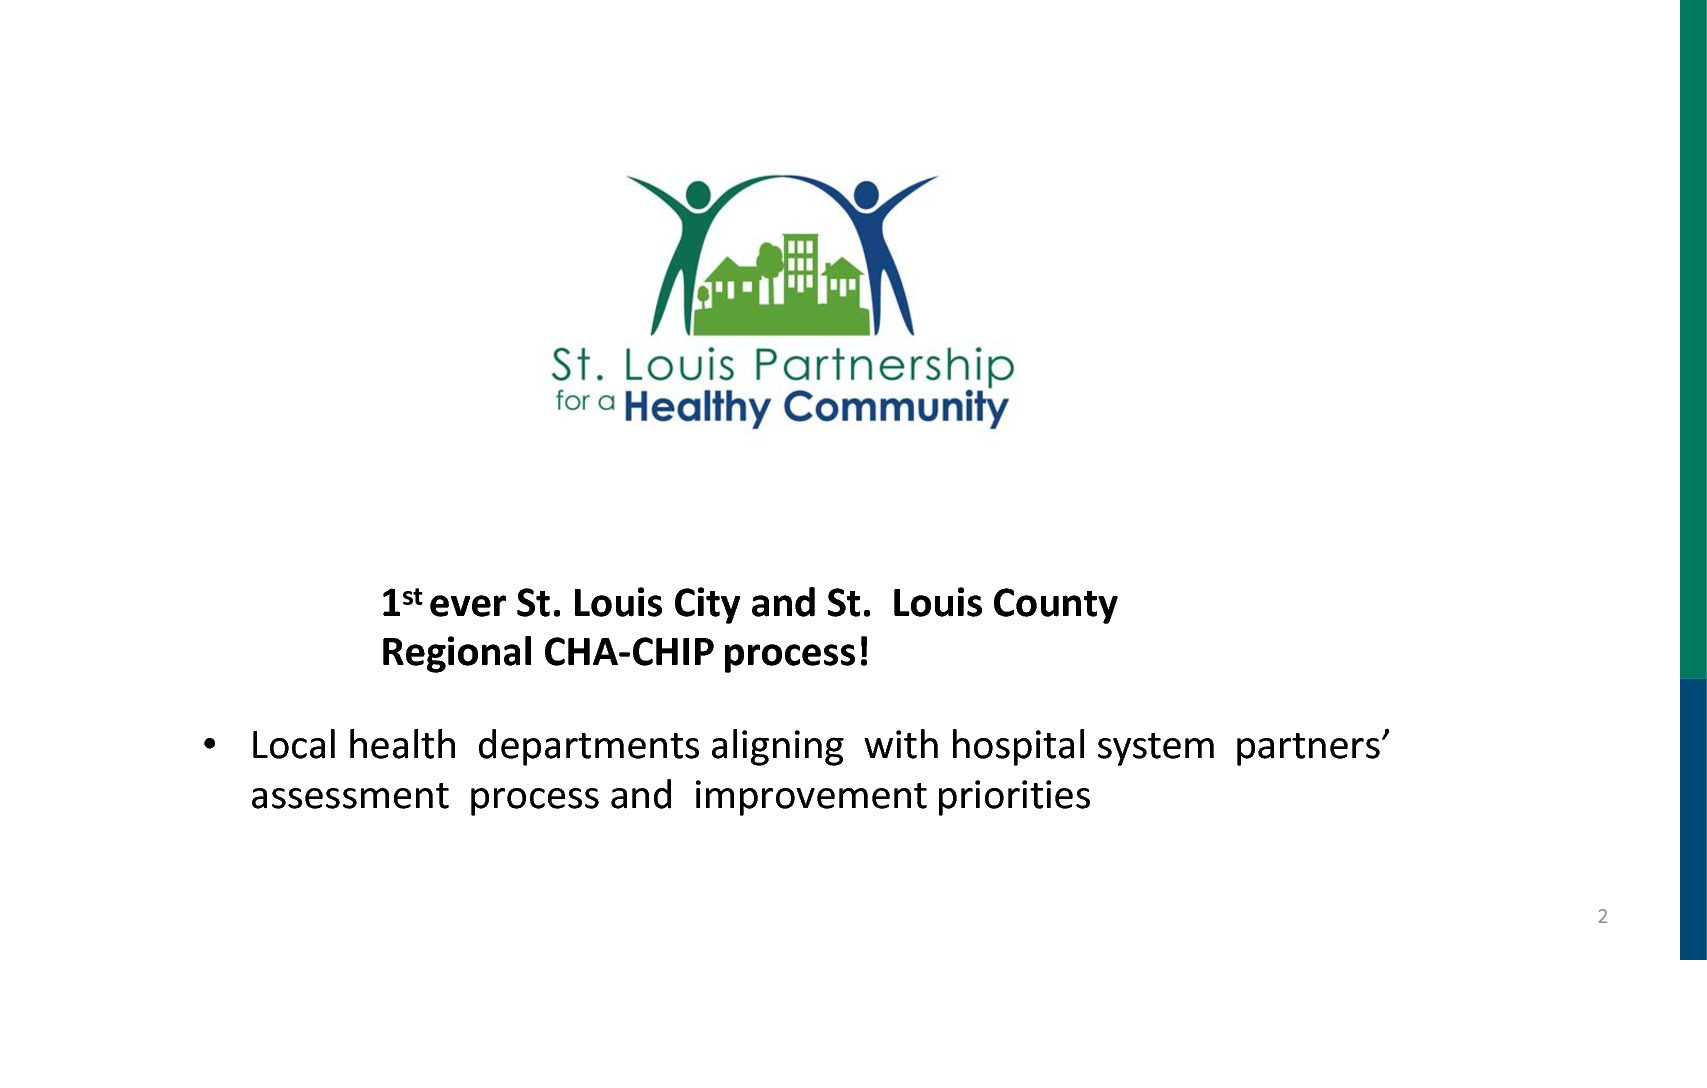 St. Louis Partnership for a Healthy Community